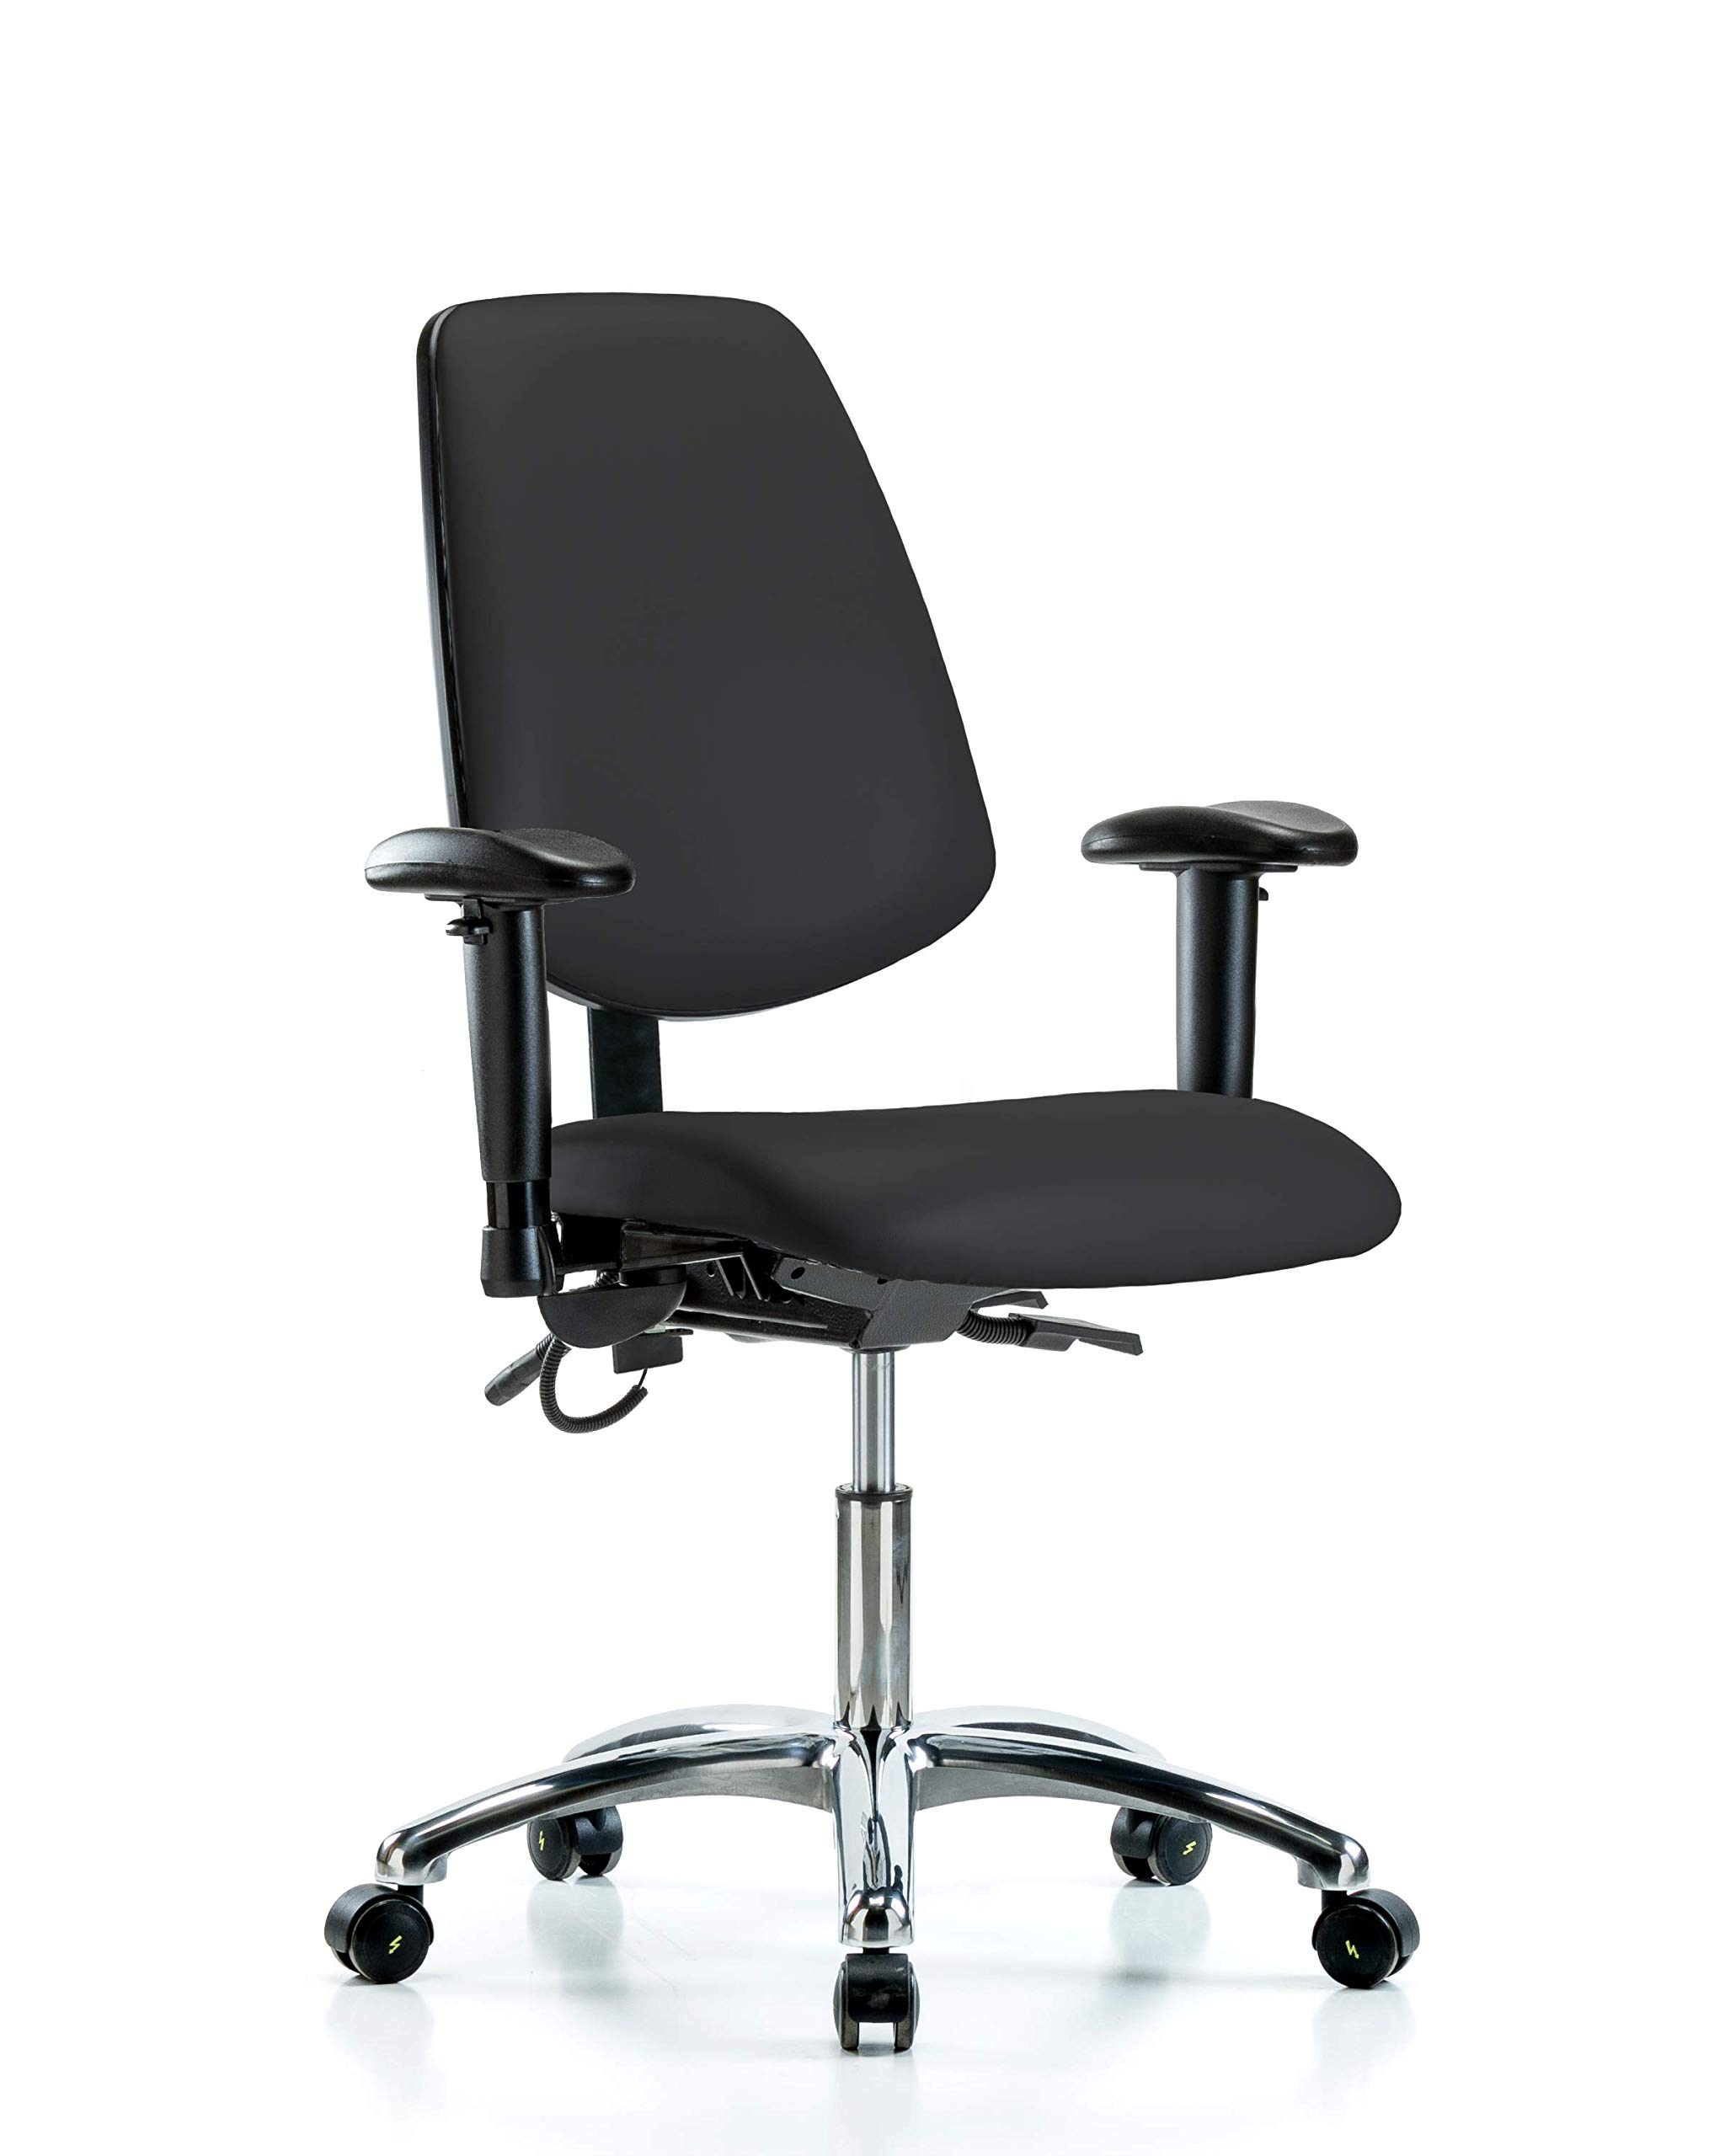 LabTech Seating LT41187 ESD Vinyl Desk Height Chair Medium Back Chrome Base, Arms, ESD Casters, Black